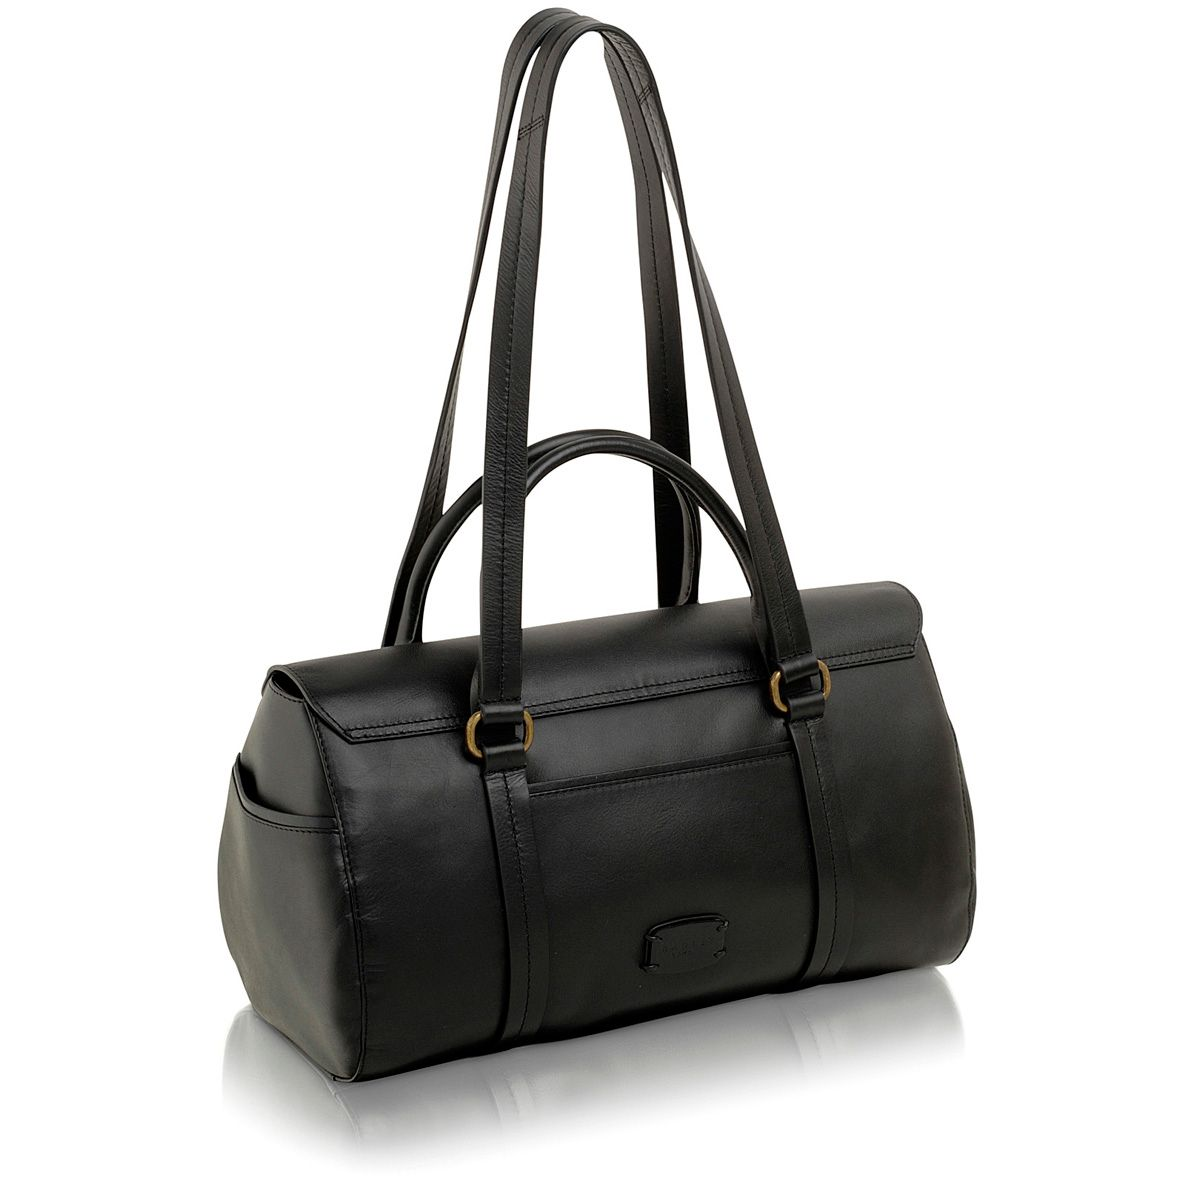 Black large bowling bag